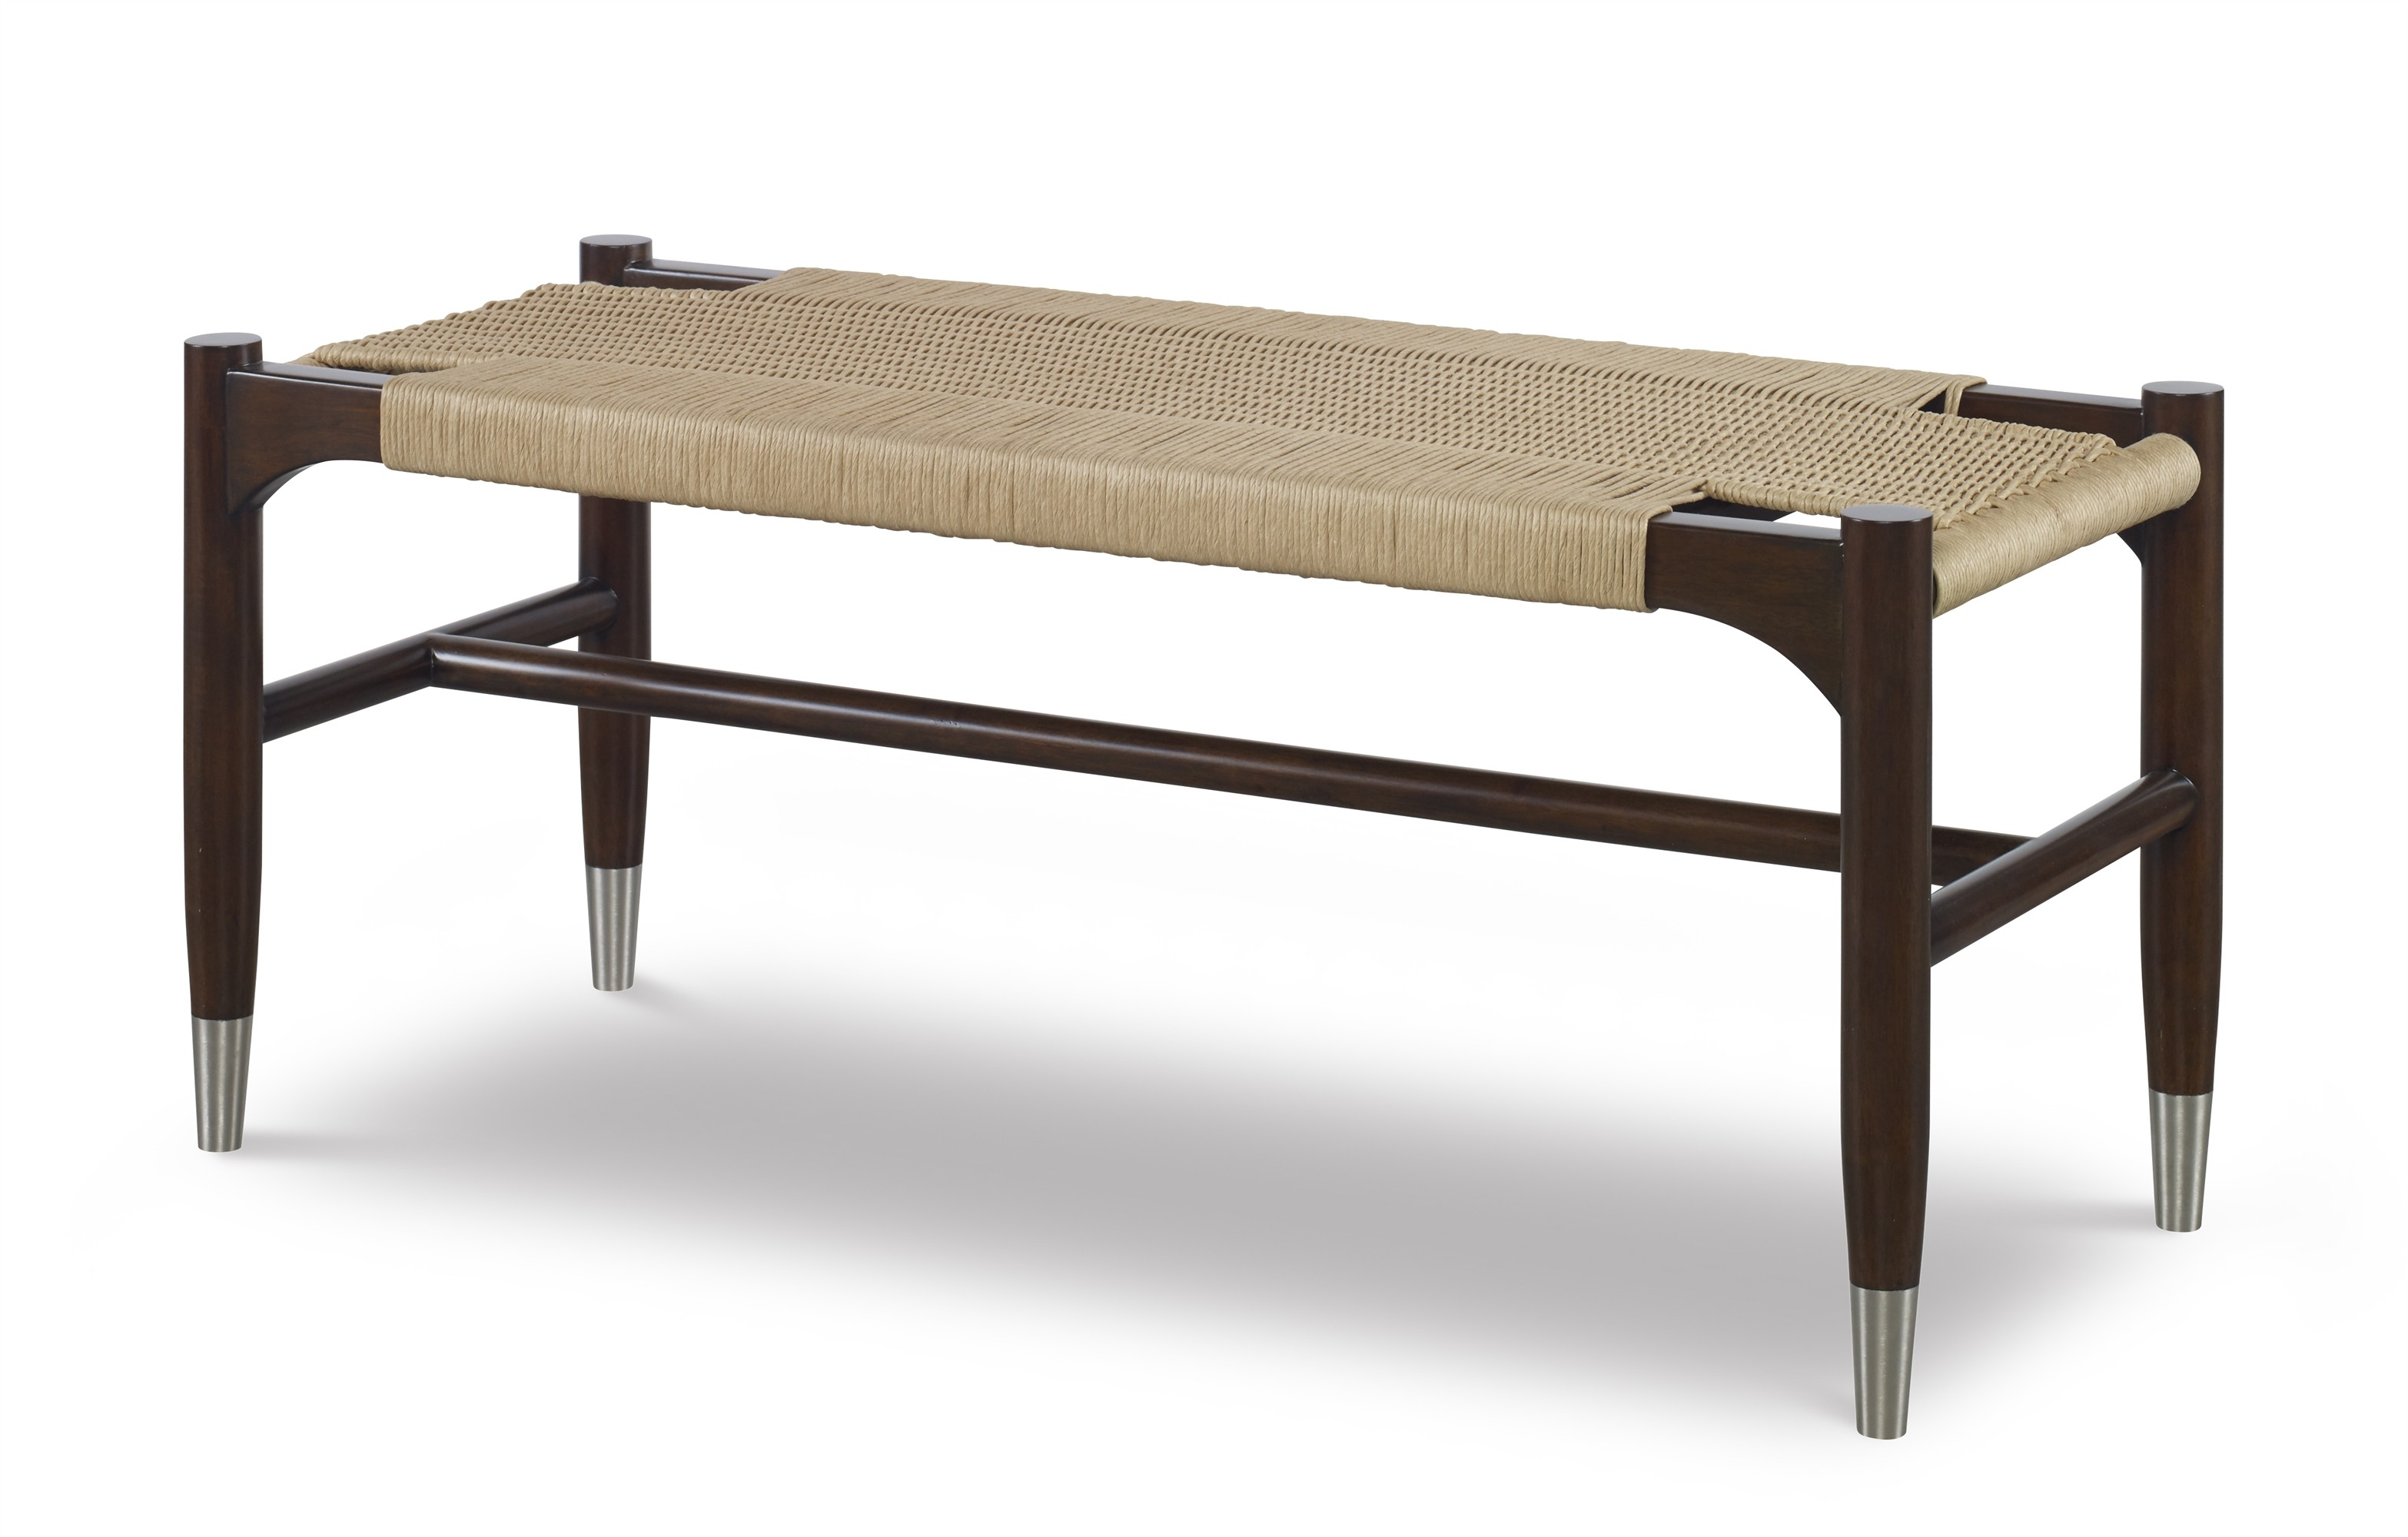 Tristan Woven Bench-Sand (Cg-095-409, C409-095)